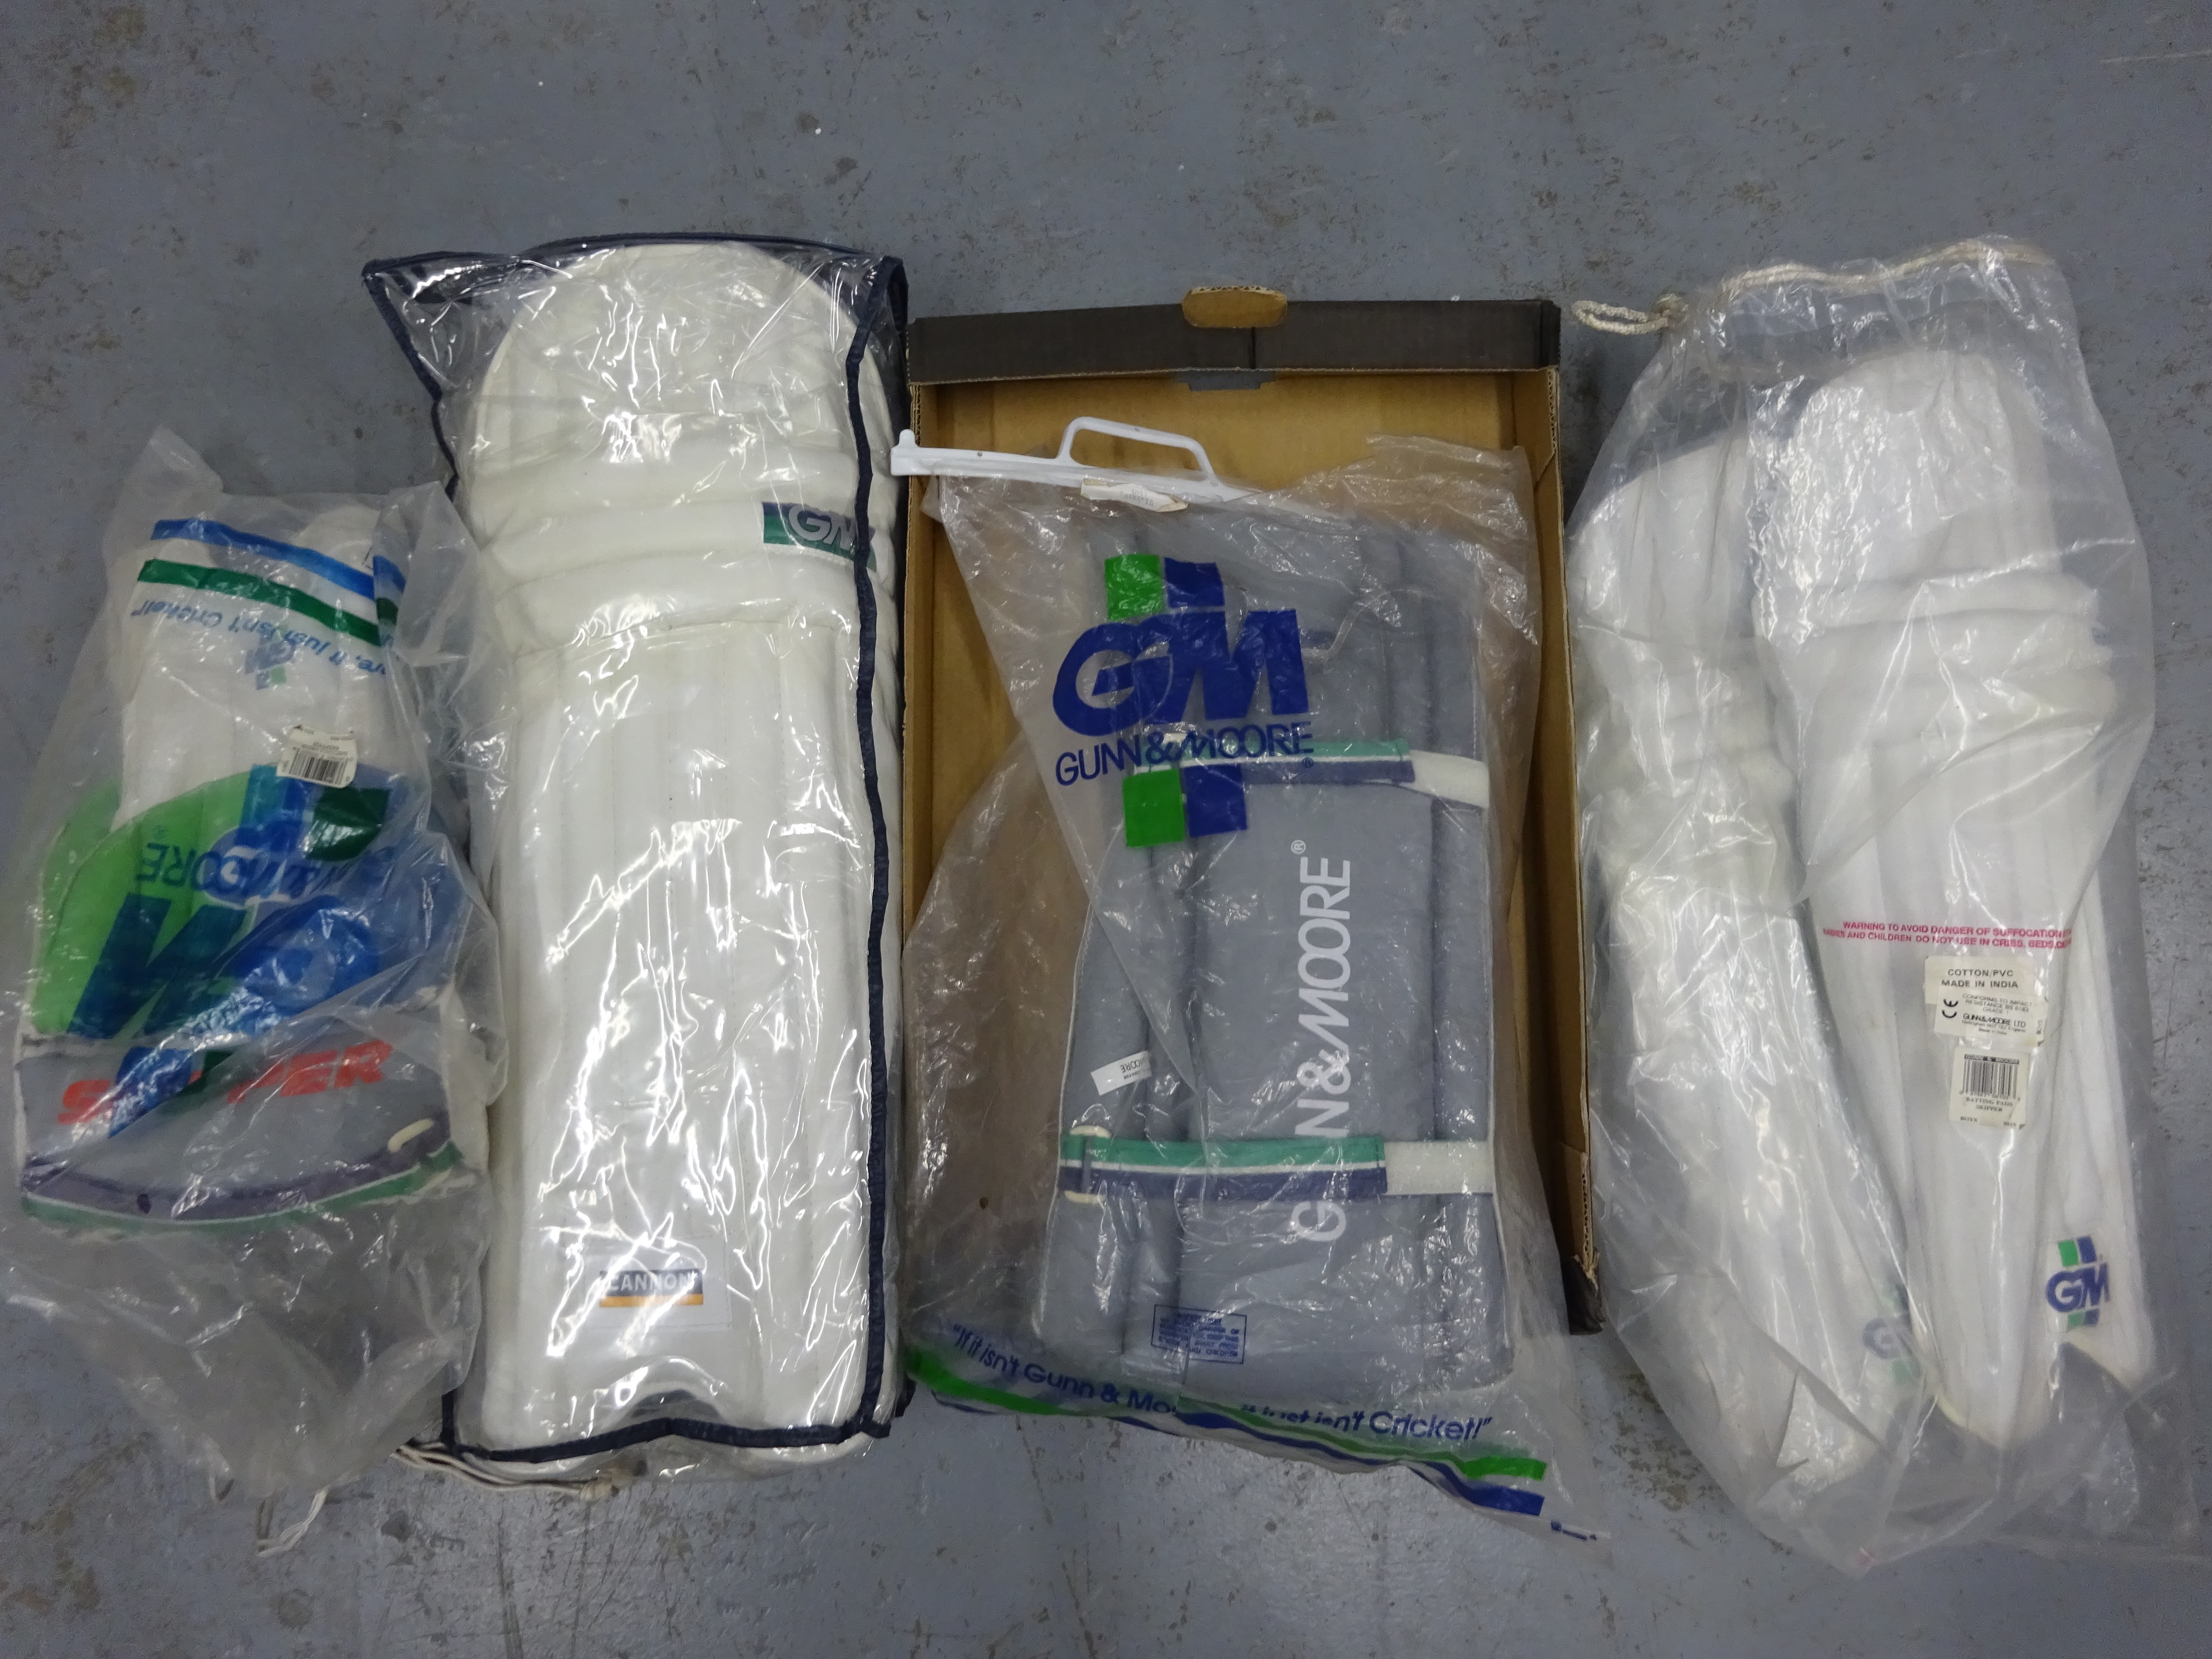 Lot 345 - 4 pairs of cricket pads, various sizes